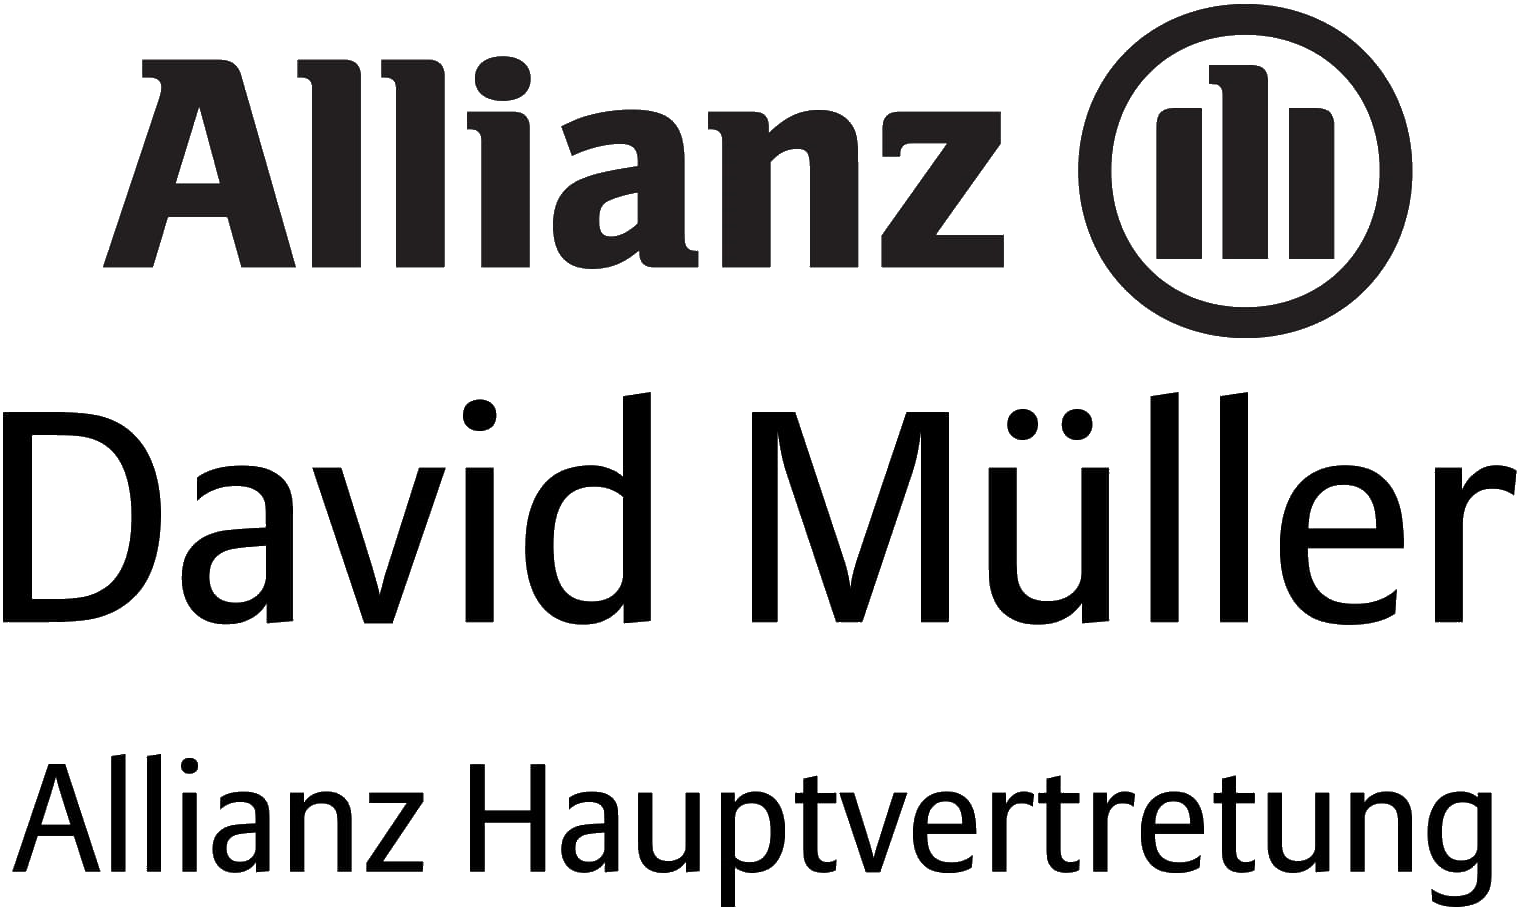 Allianz David Müller